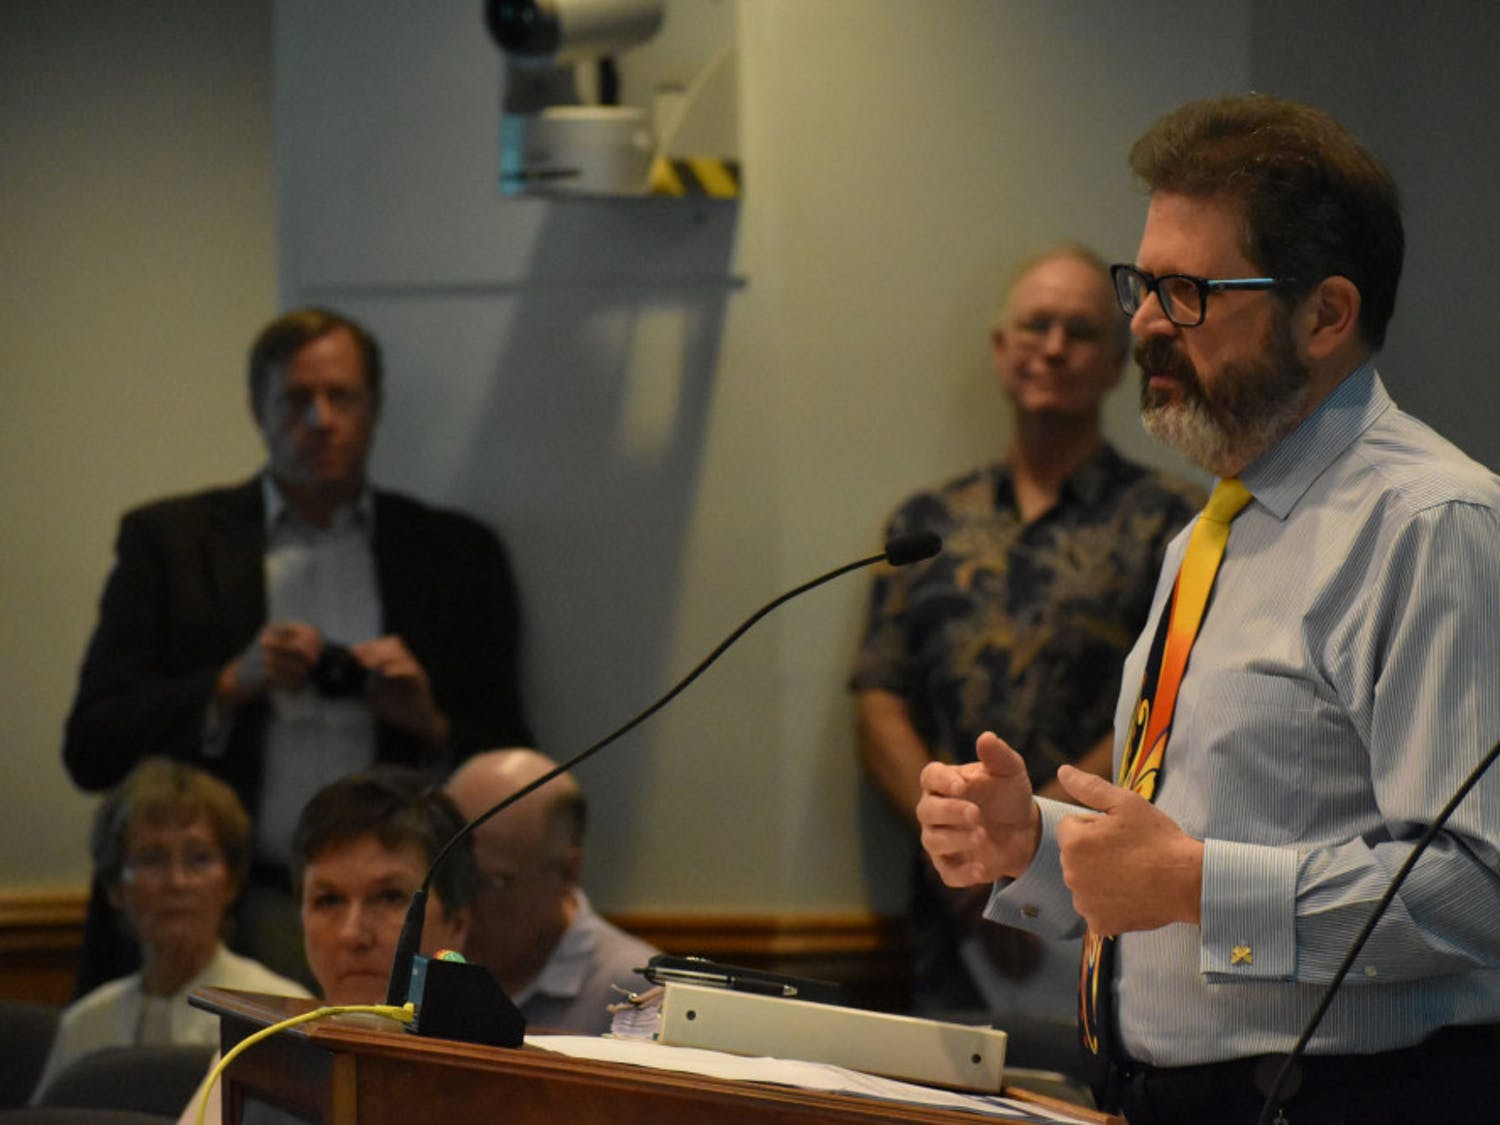 Edward Bielarski Jr., the general manager of GRU, speaks at a city commission meeting Thursday about a possible partnership between GRU and Florida Power & Light.